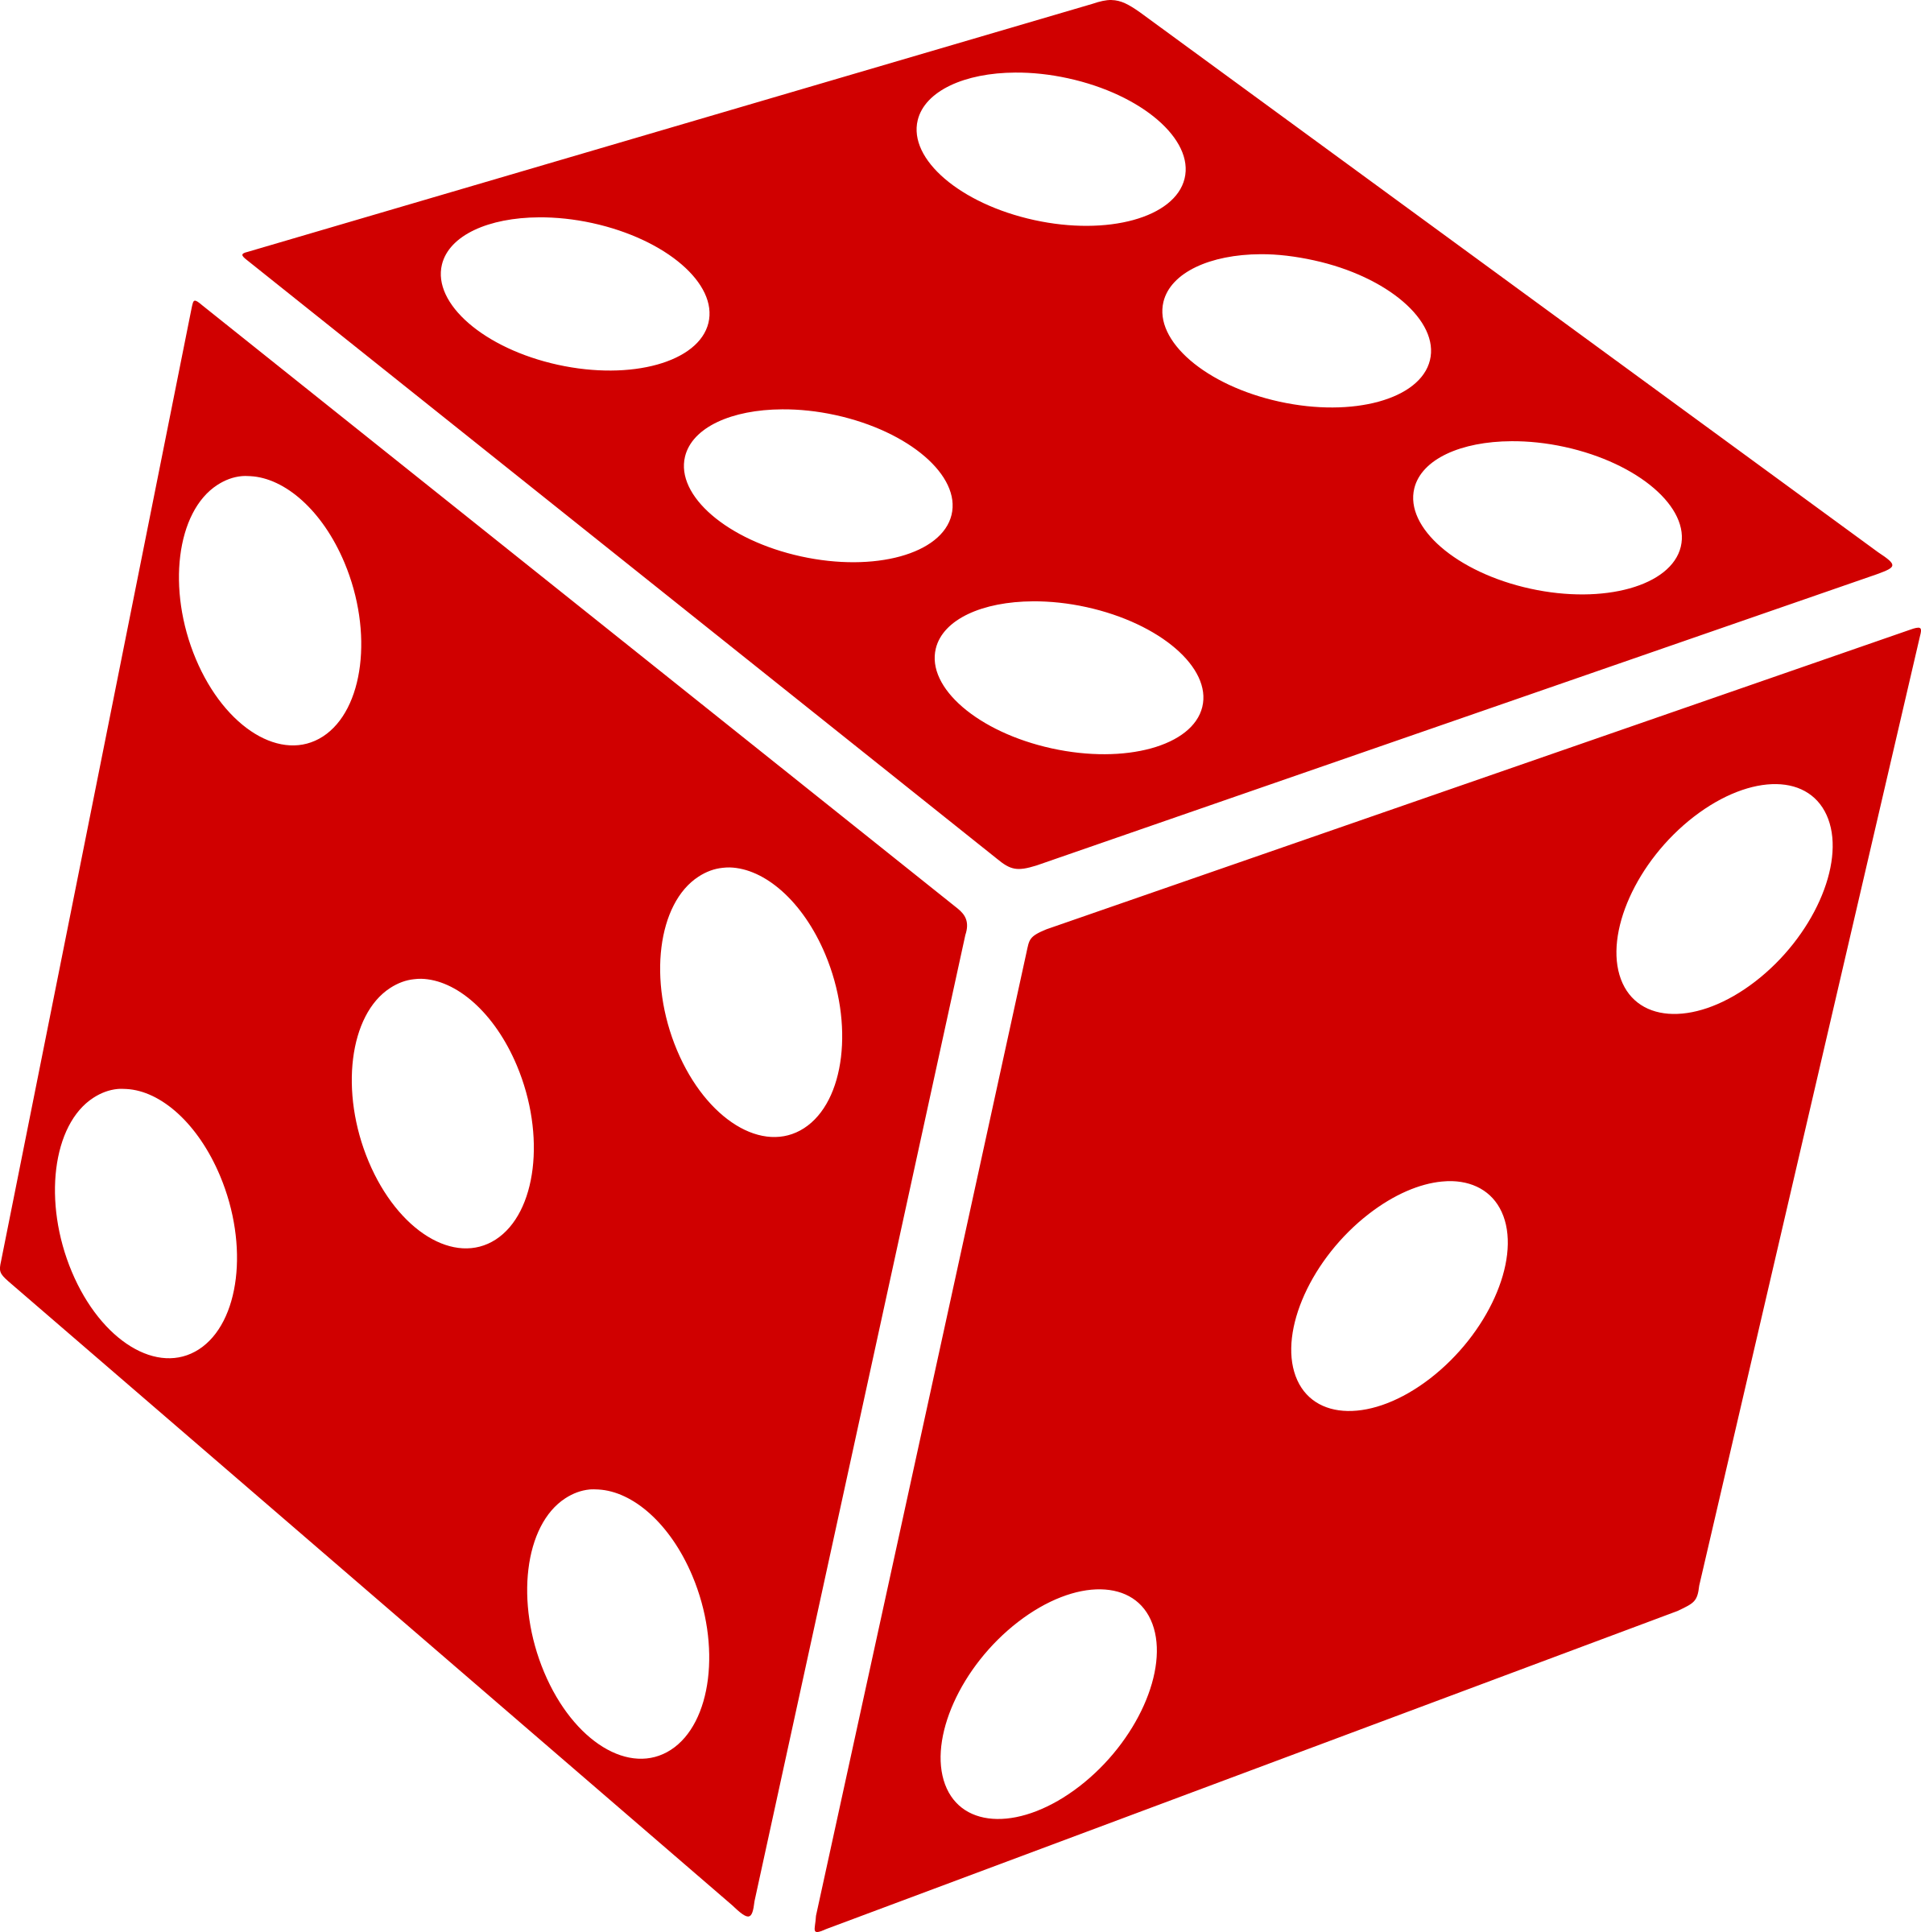 jpg freeuse download D20 clipart rpg dice. Tg traditional games thread